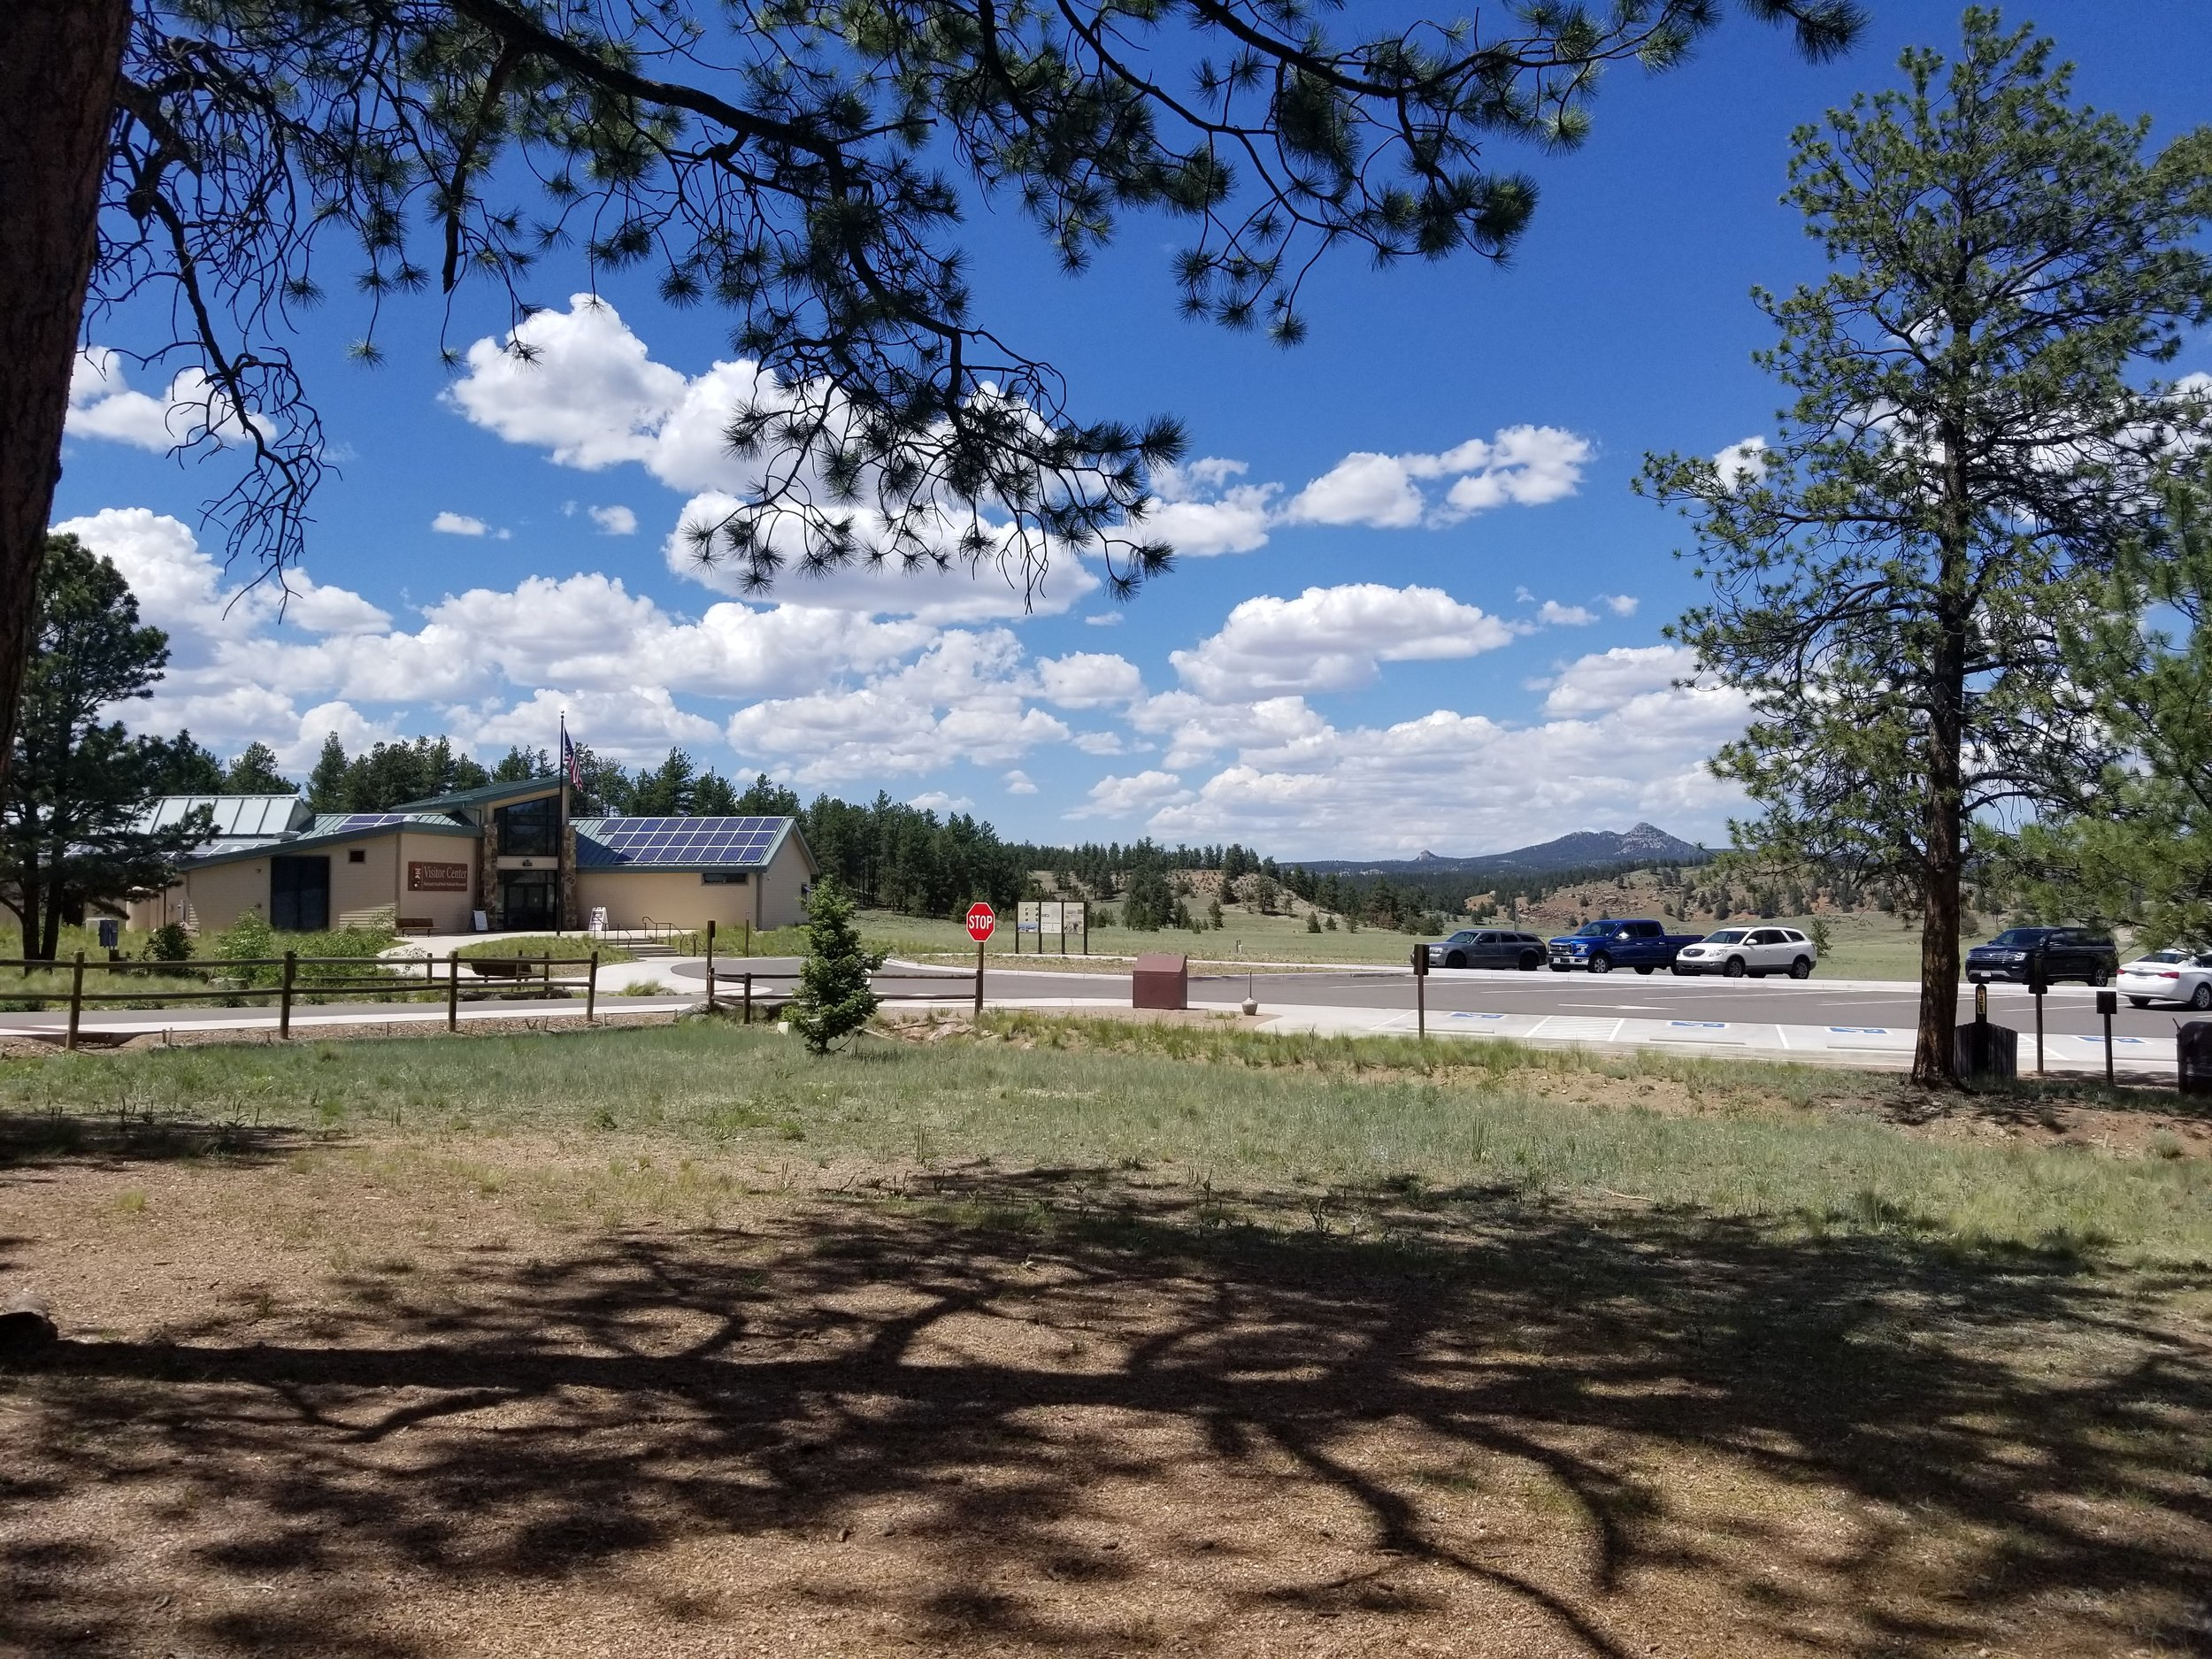 Our view during our picnic lunch at Florissant Fossil Beds